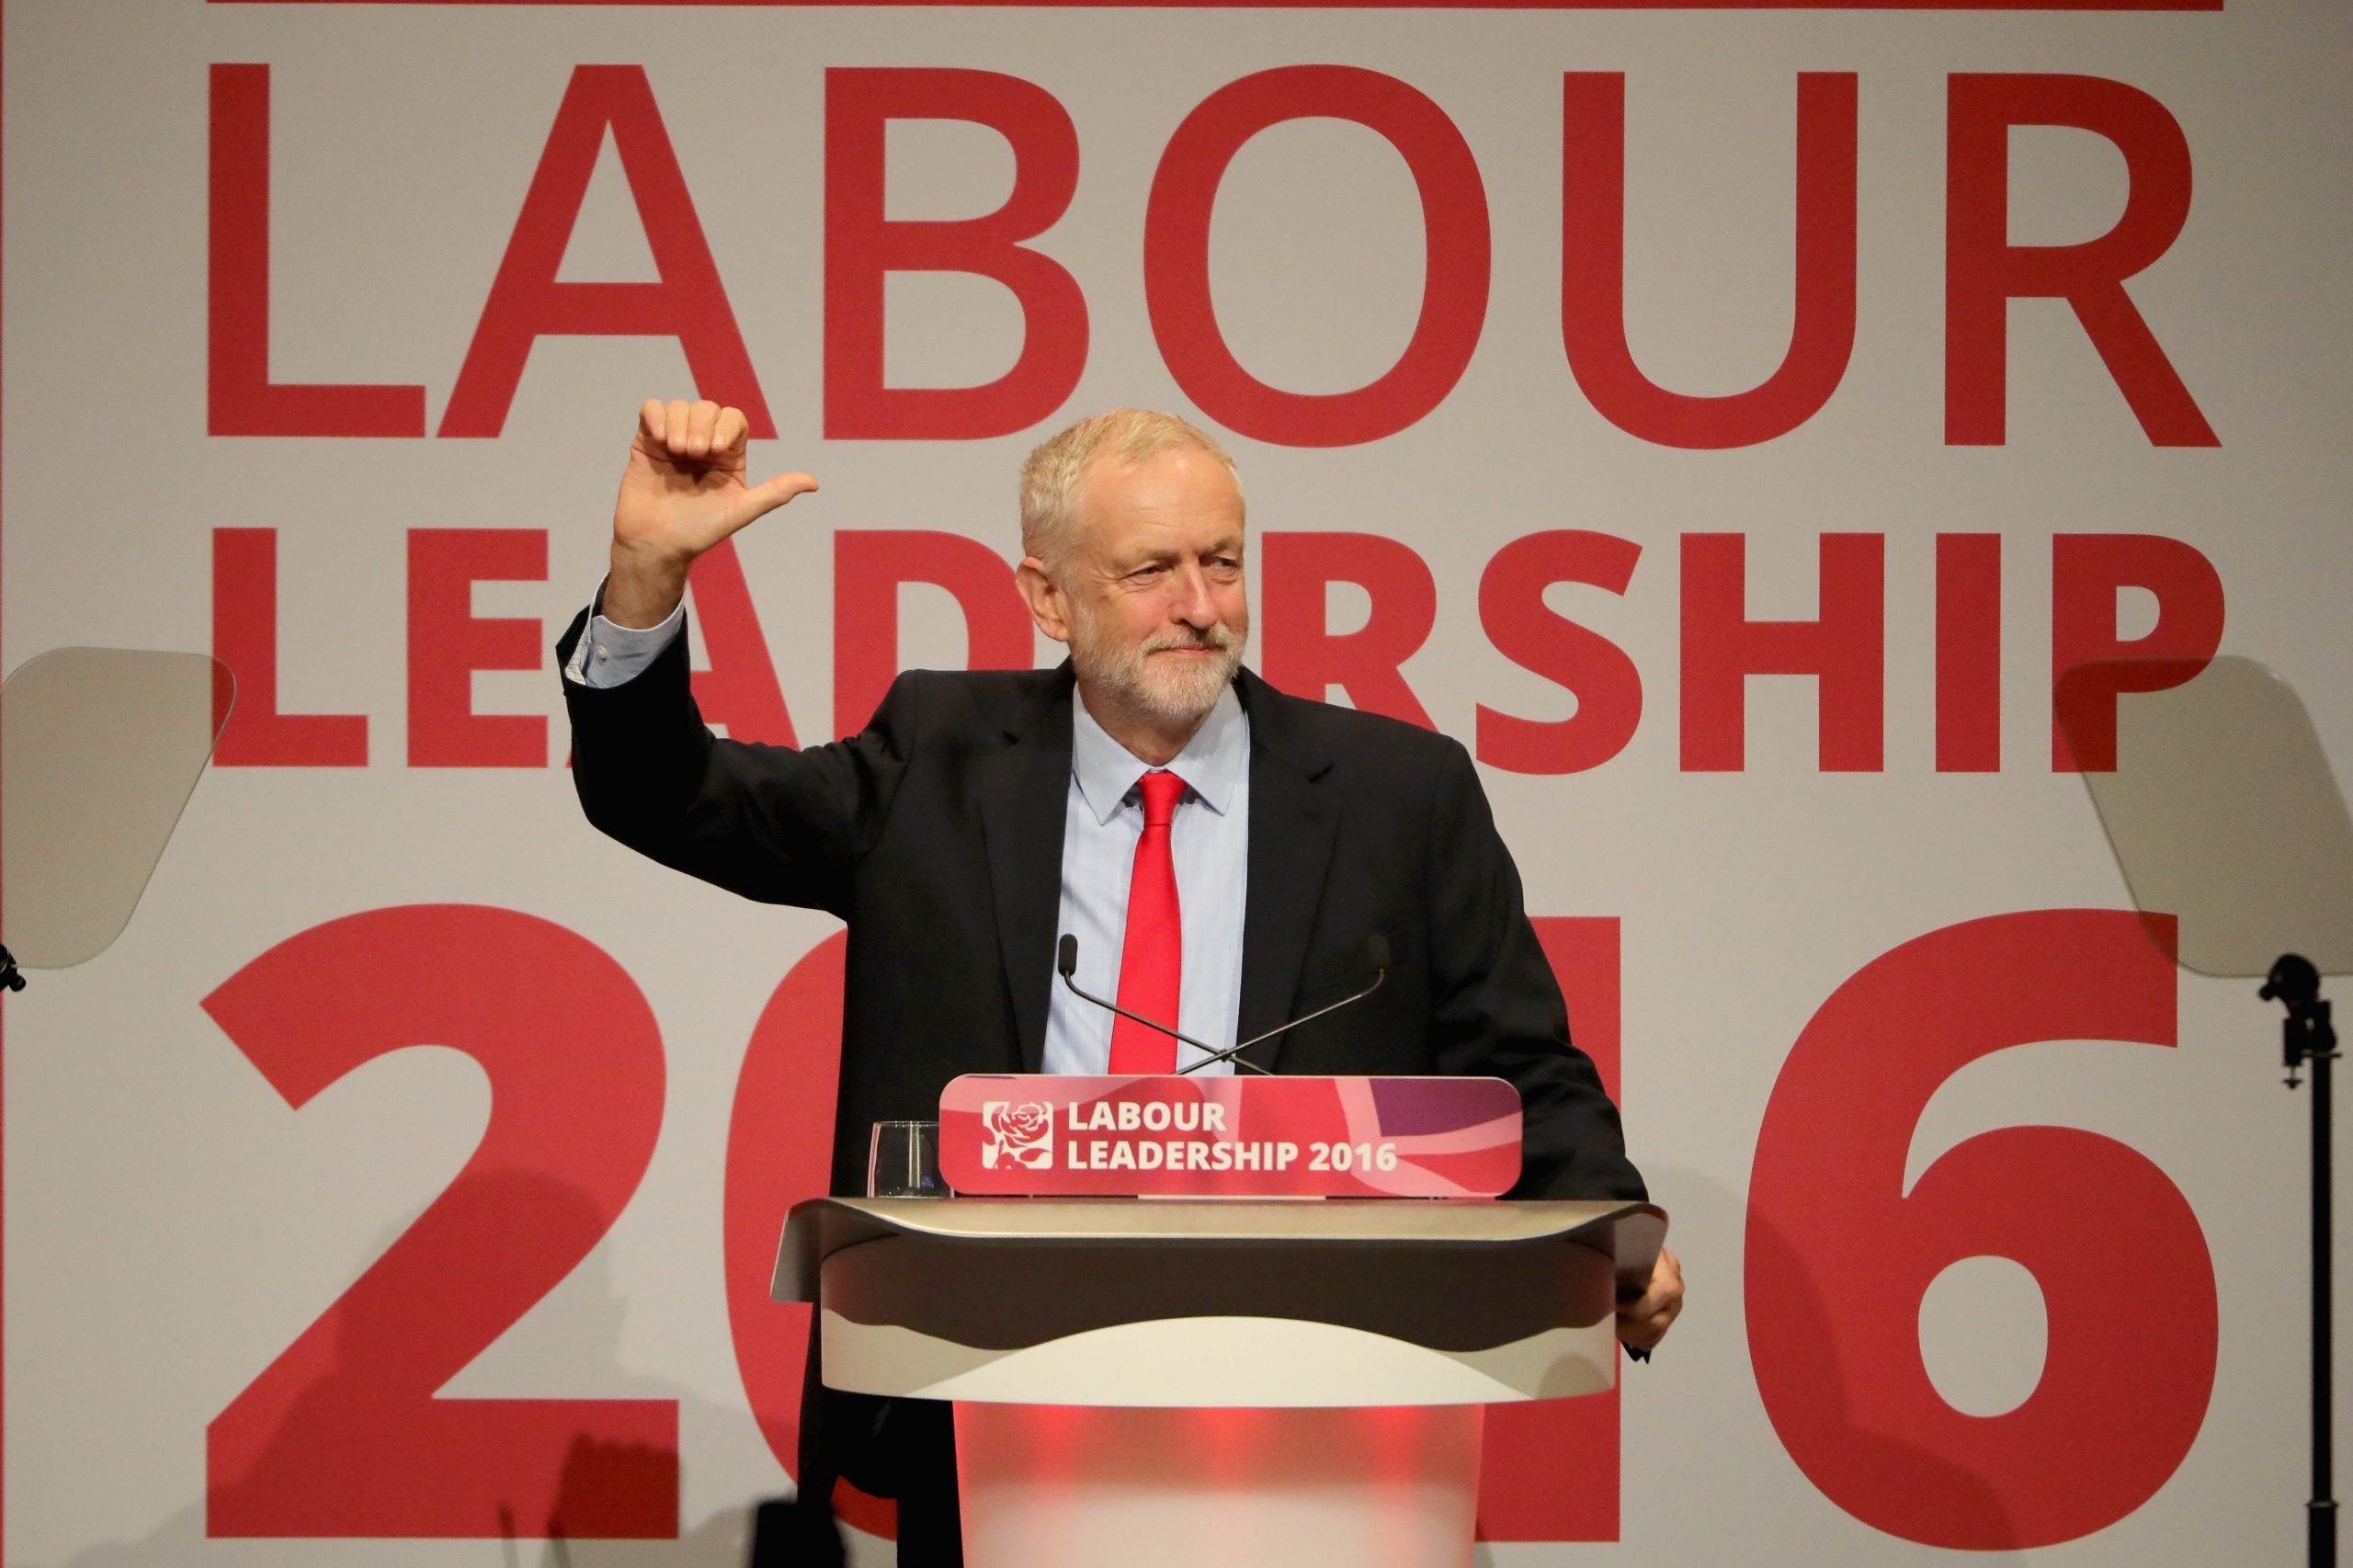 Labour has lost its identity